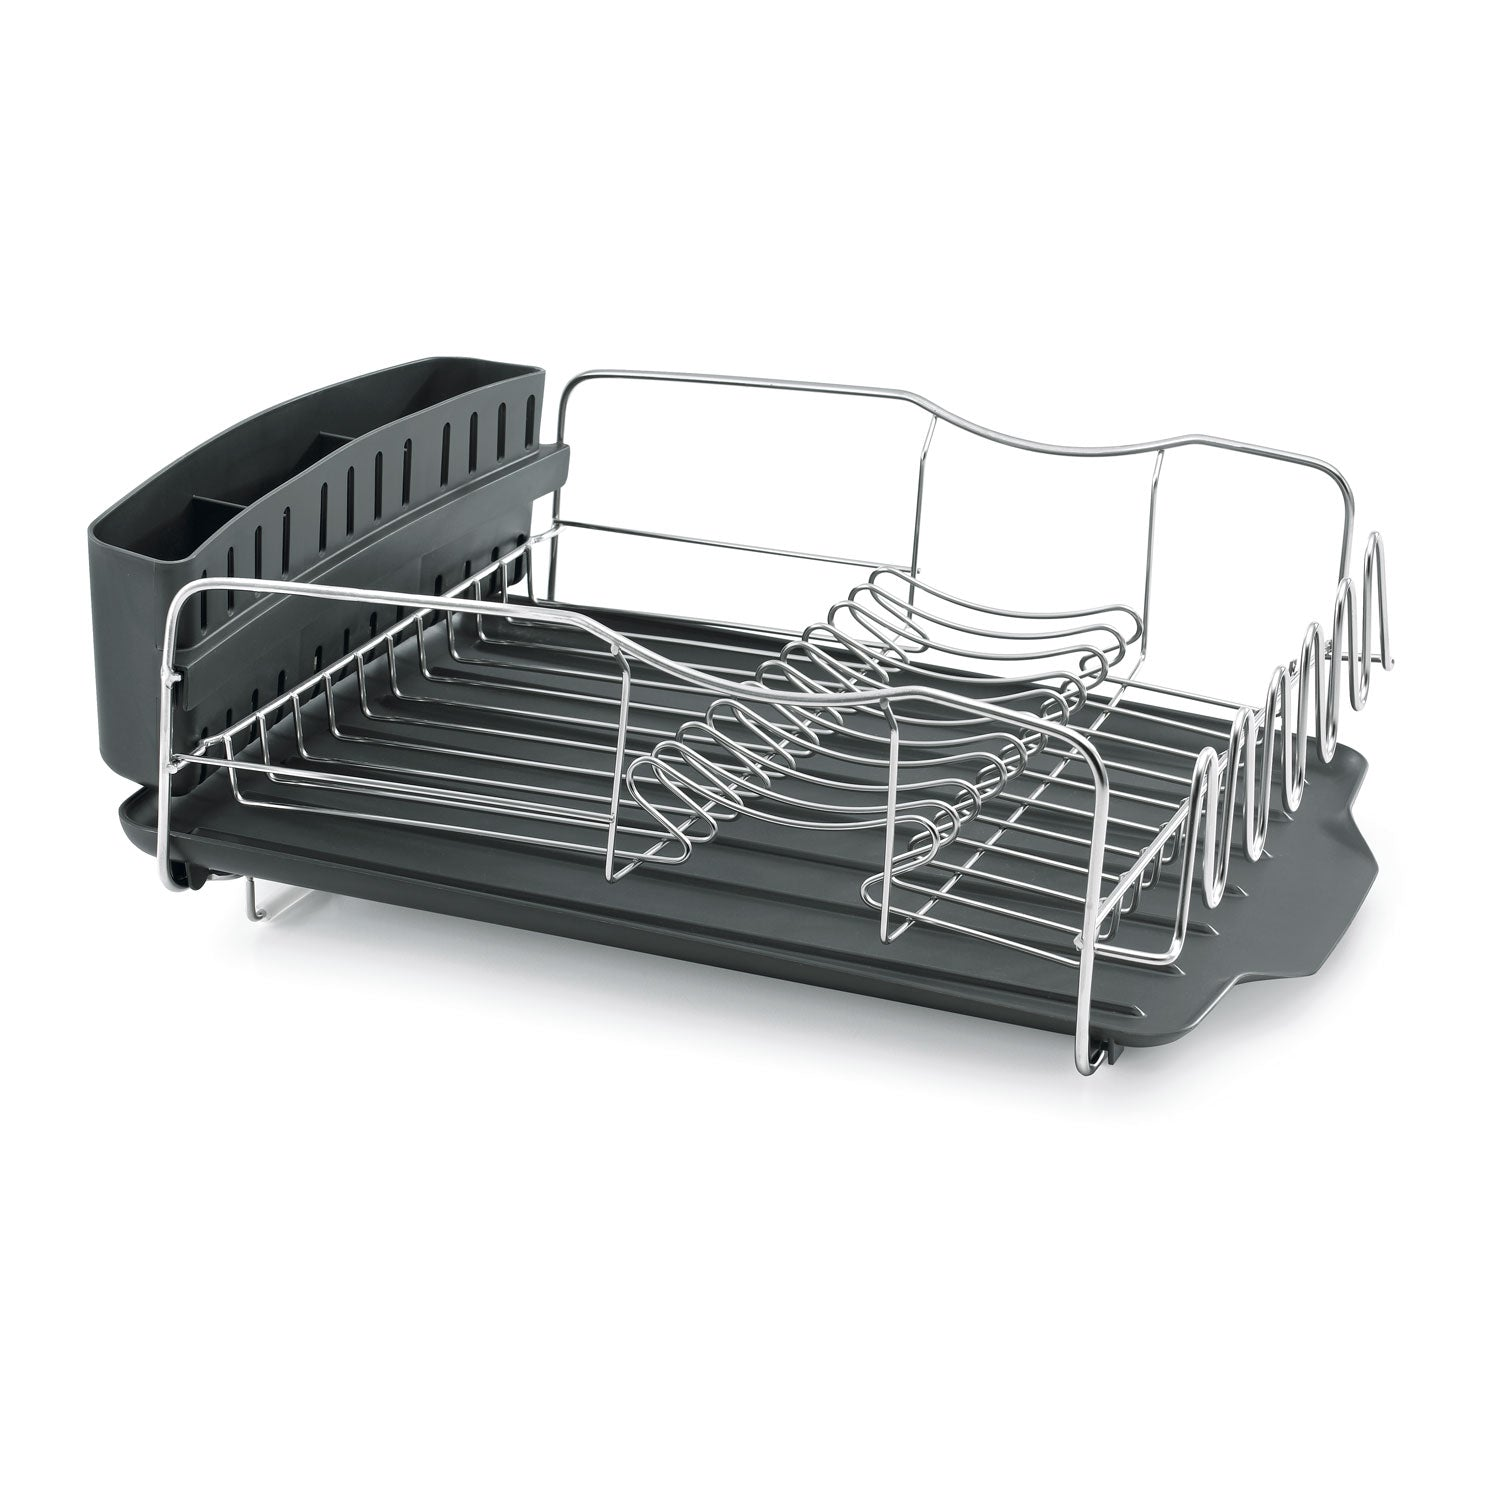 Advantage Dish Rack Drain Tray-Gray zoomed